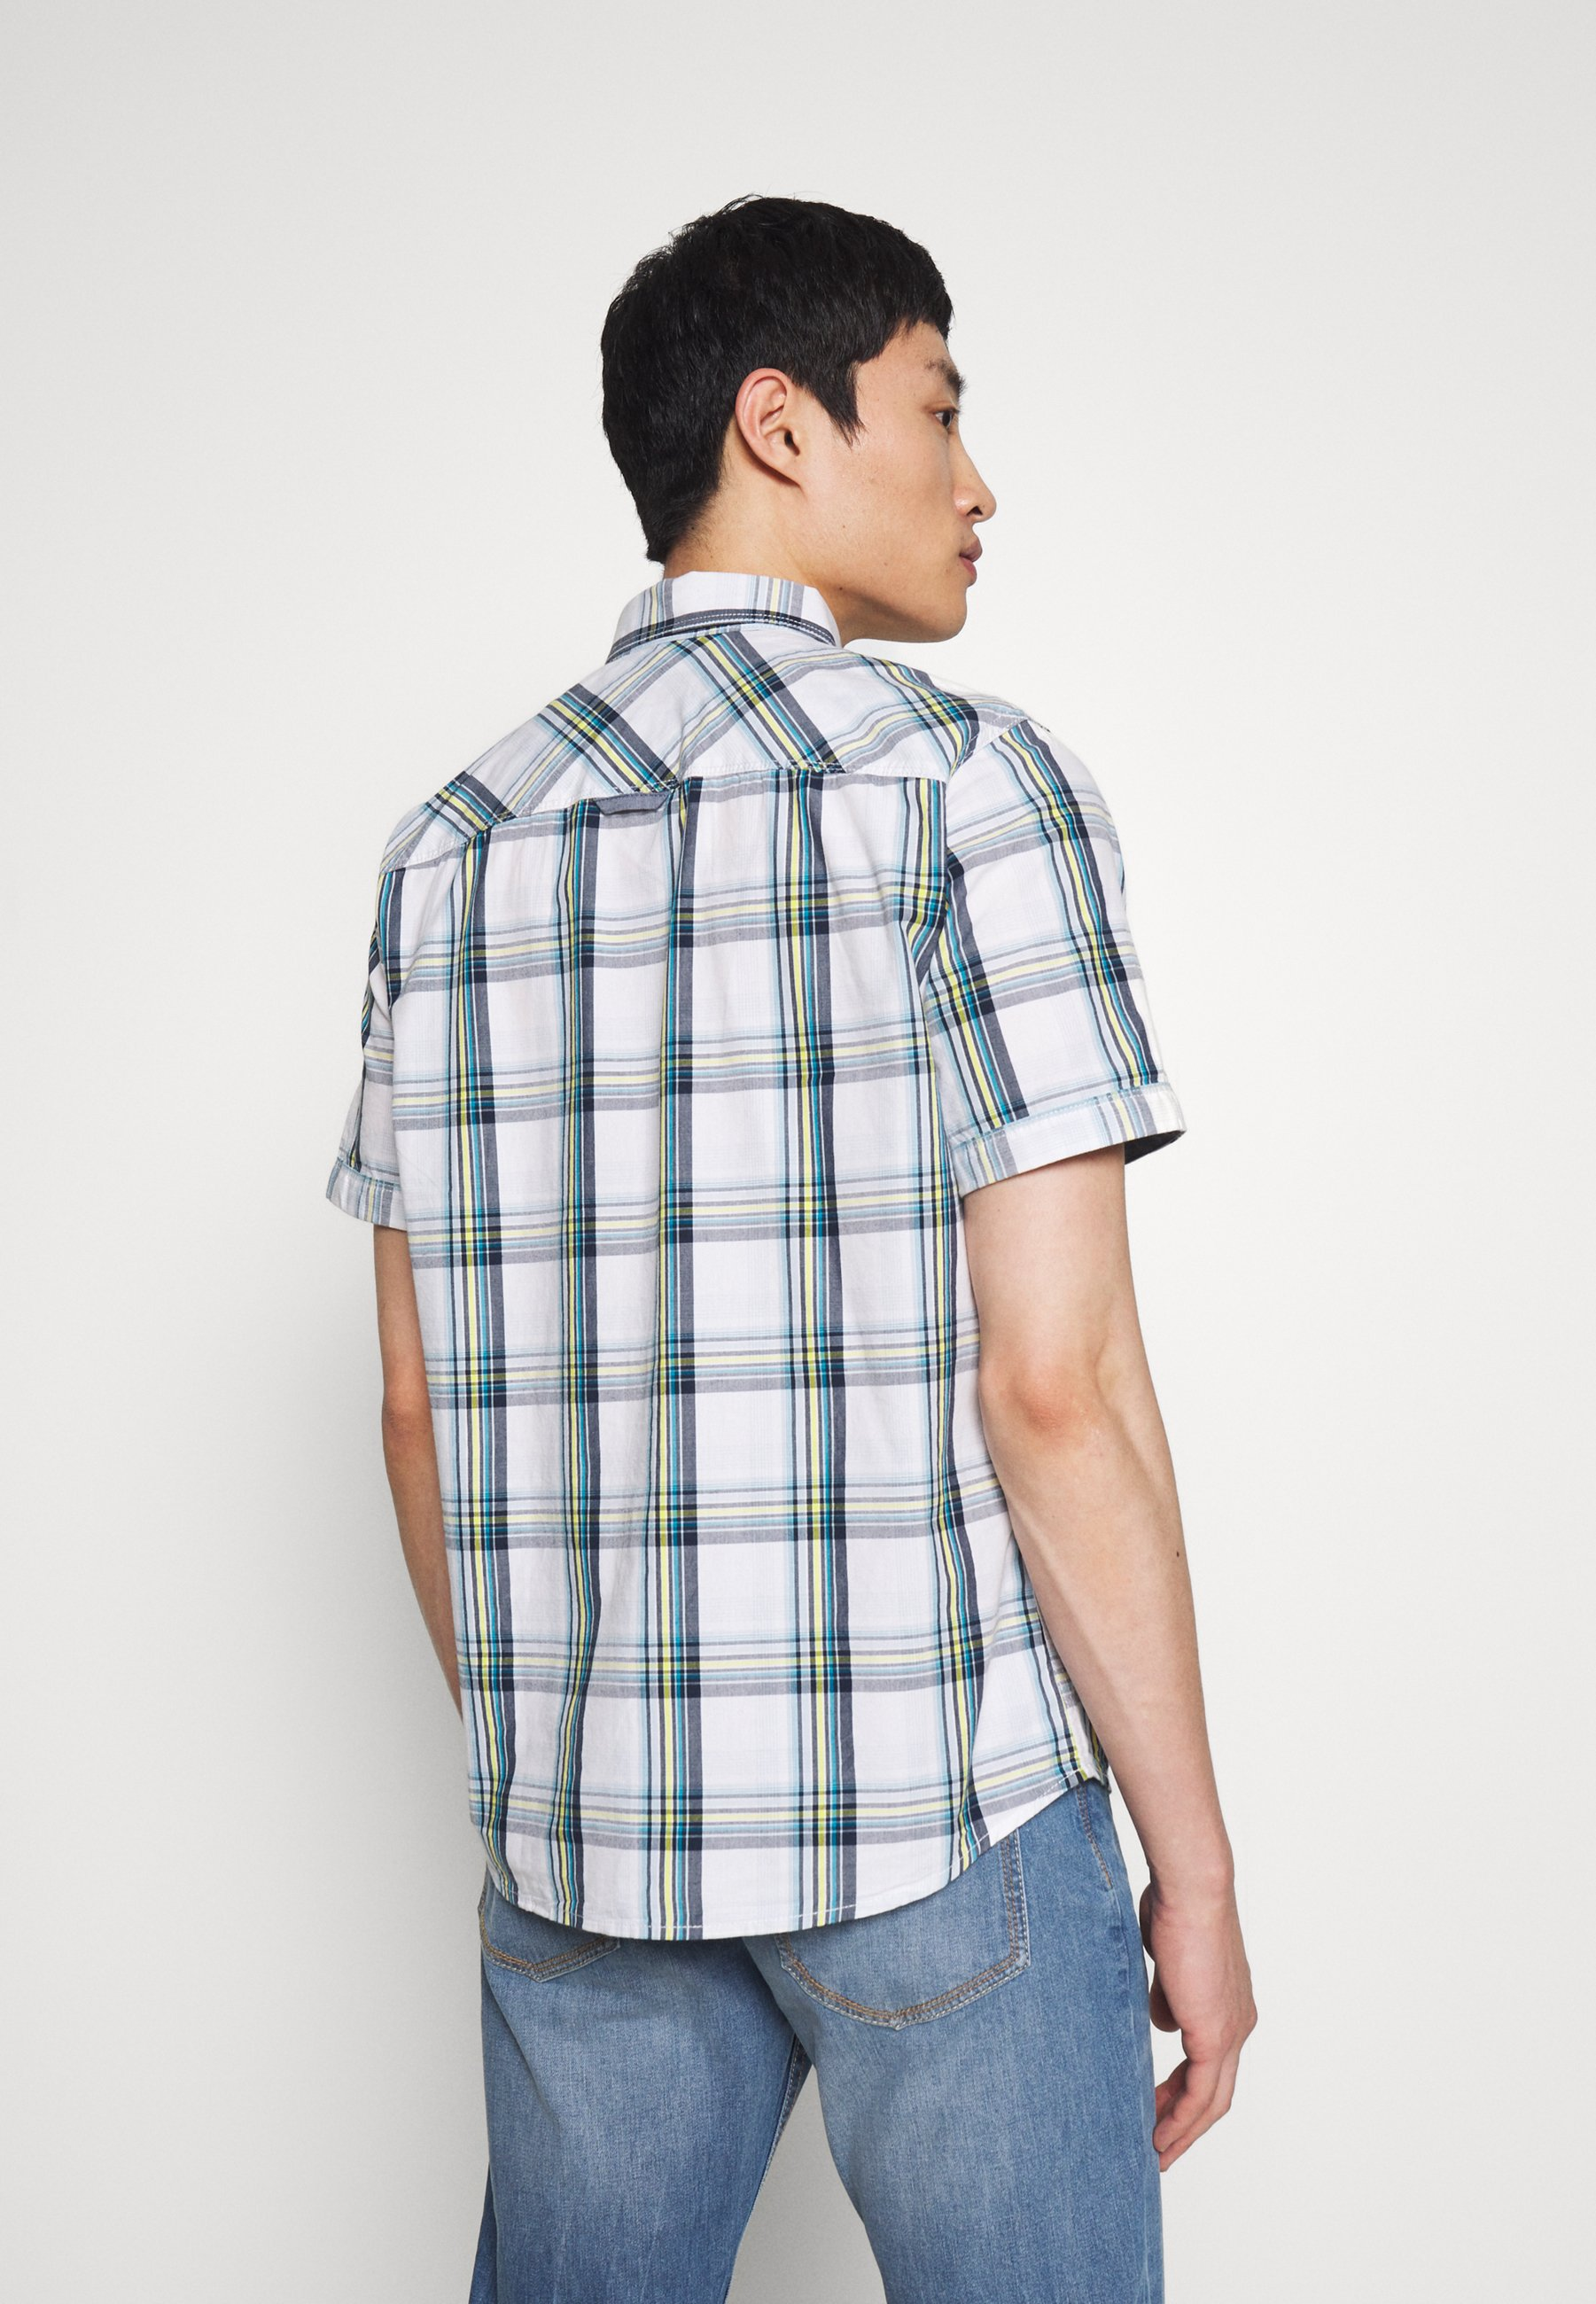 Tom Tailor Ray Colourful Check Package - Camicia White Base/blue tsLlb